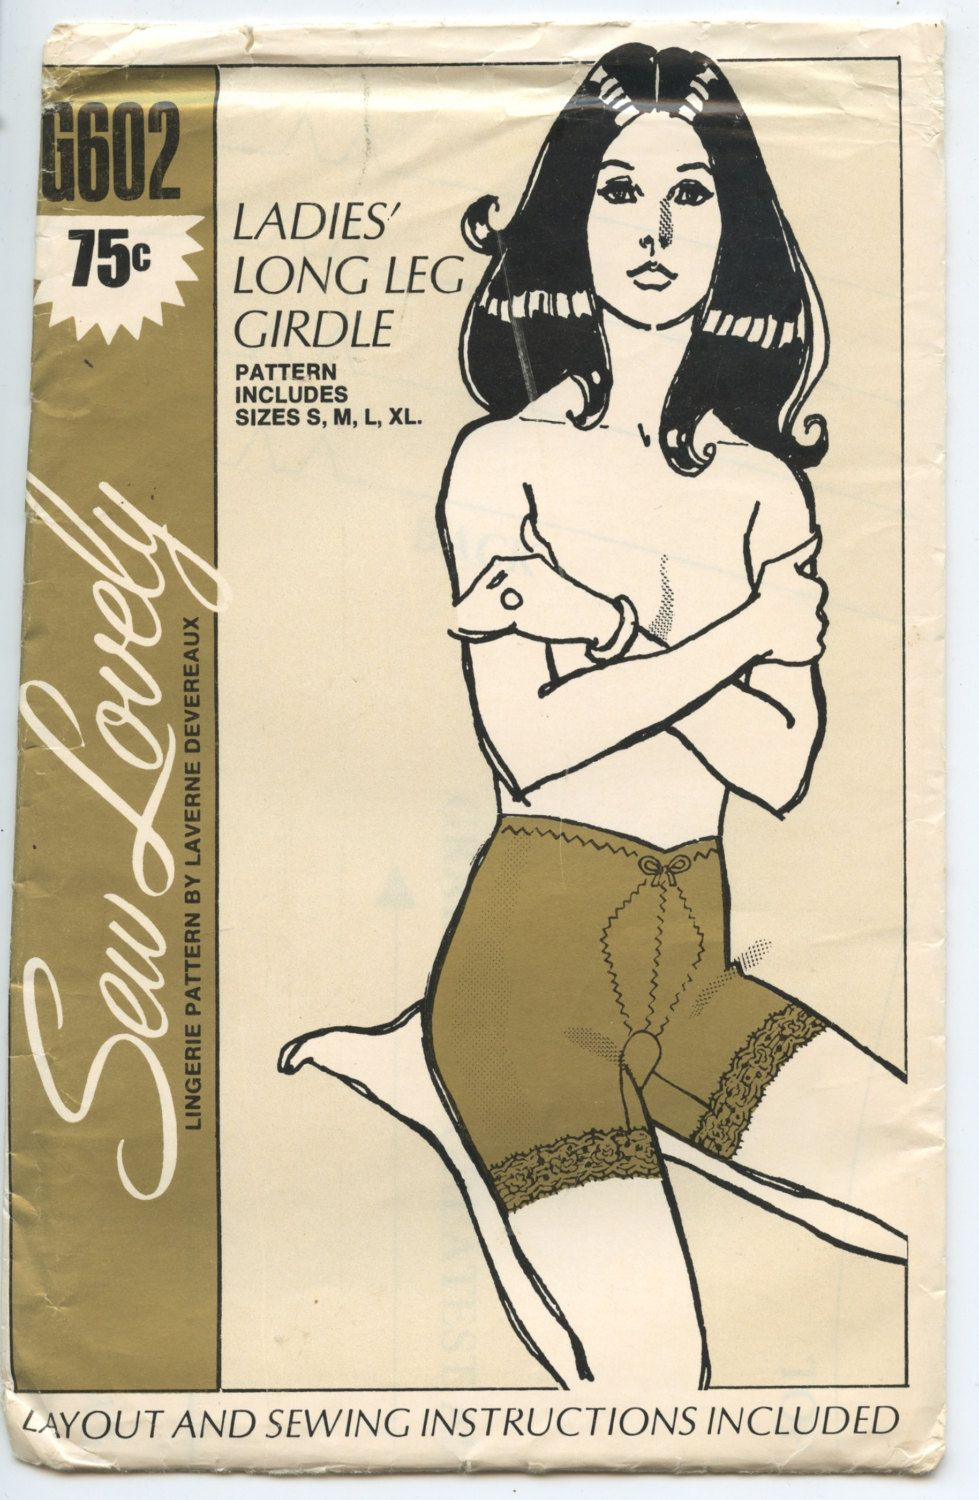 1970's Sew Lovely Lingerie Pattern by Laverne Devereaux G602 Ladies' Long Leg Girdle Vintage Sewing Pattern Sizes S, M, L, XL by GreyDogVintage on Etsy